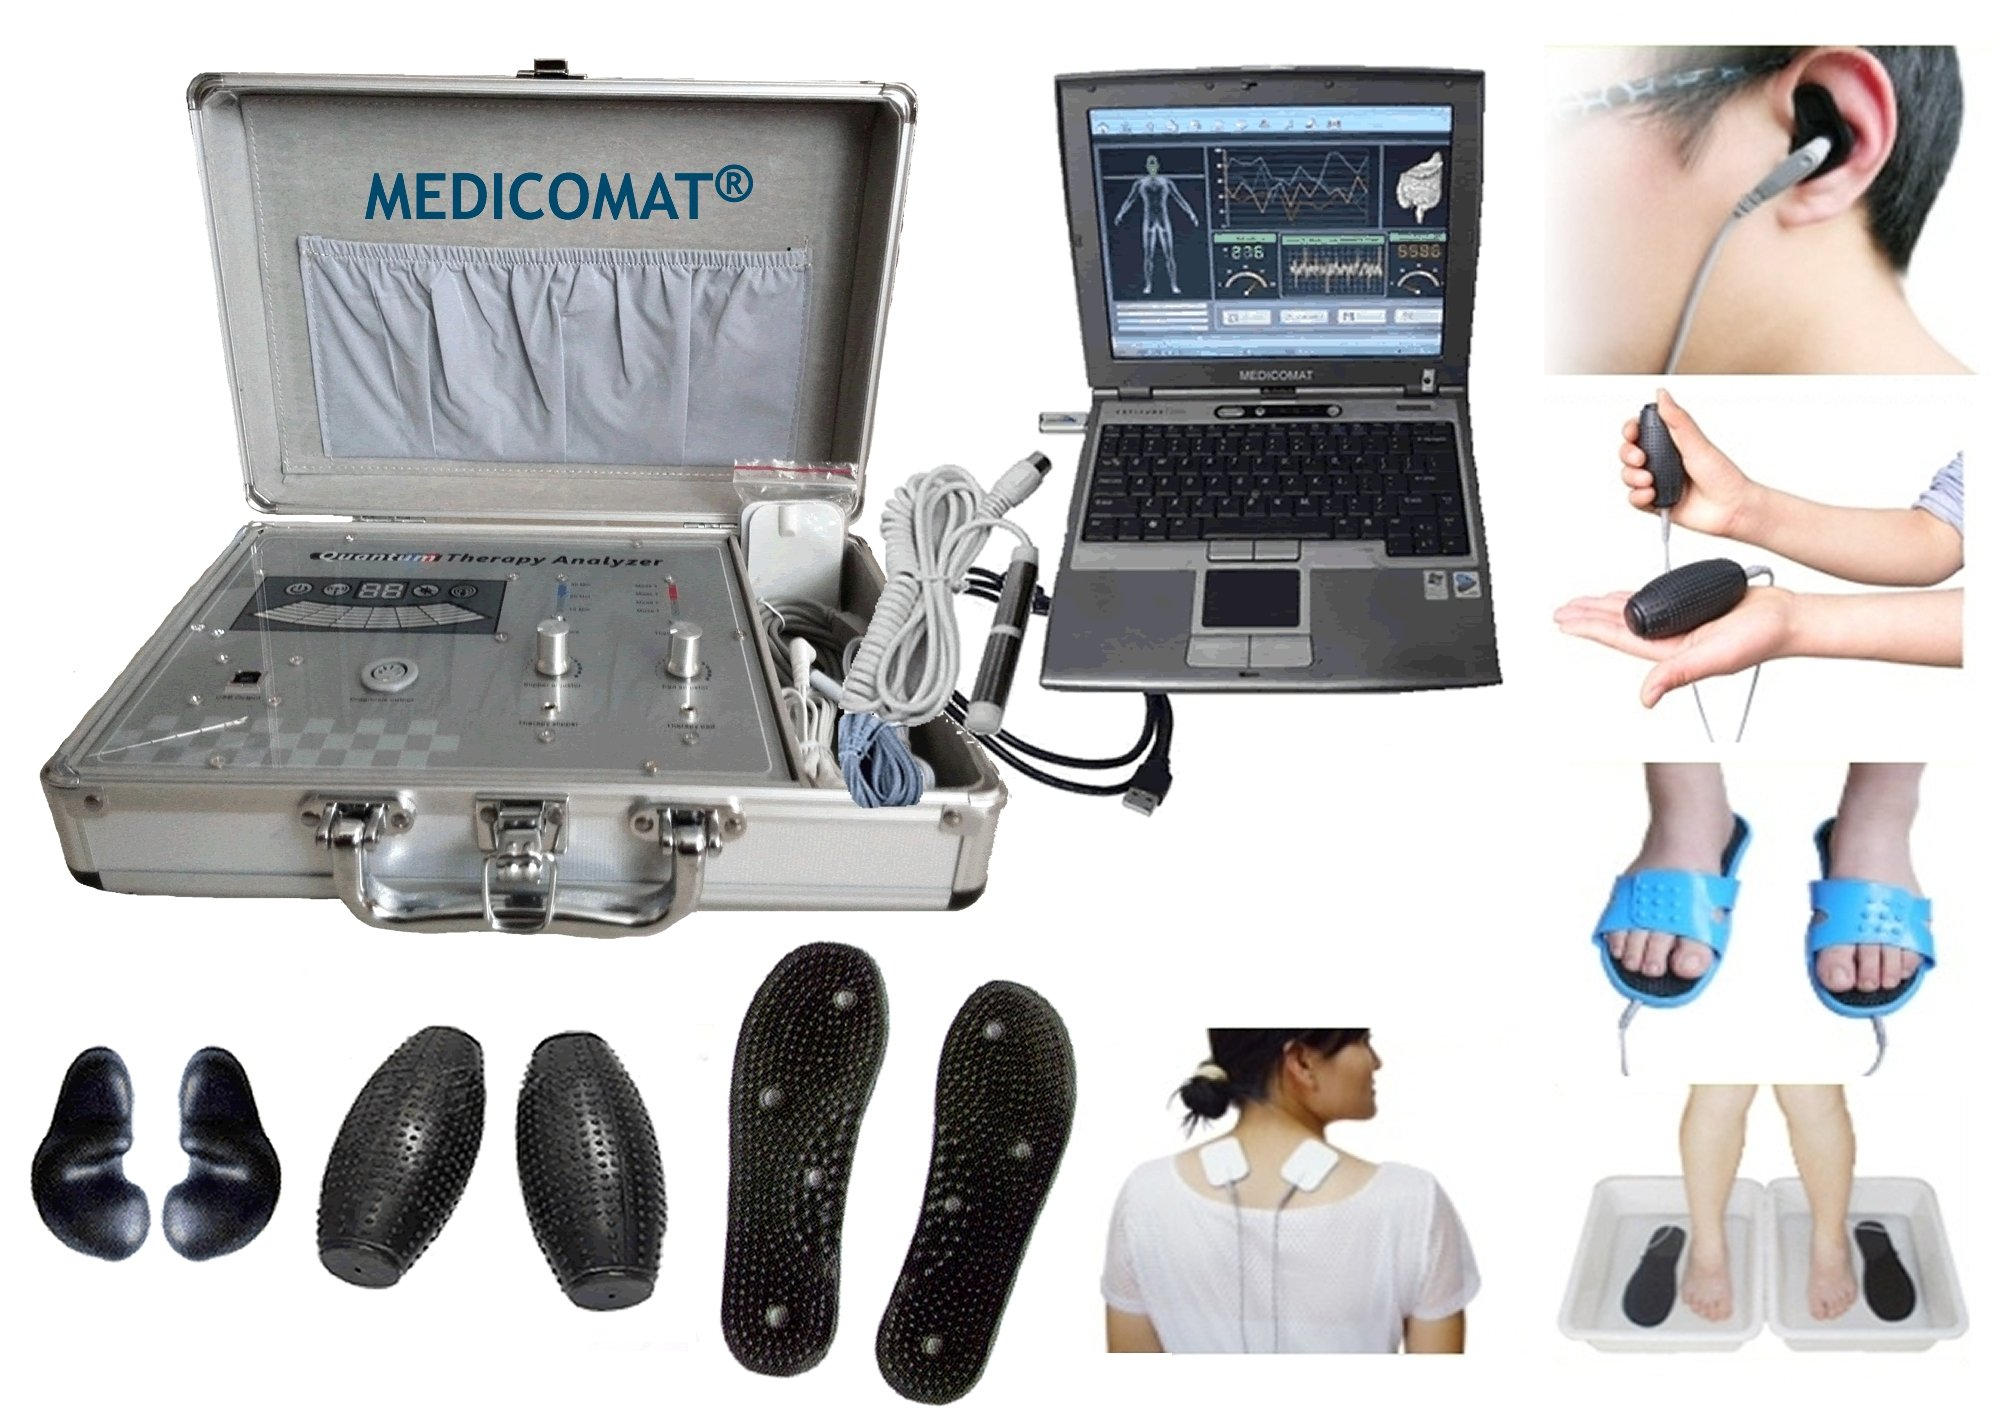 Healthy Living at Home Medicomat-291 Quantum Healthy Computer Therapy Analyzer System by Medicomat